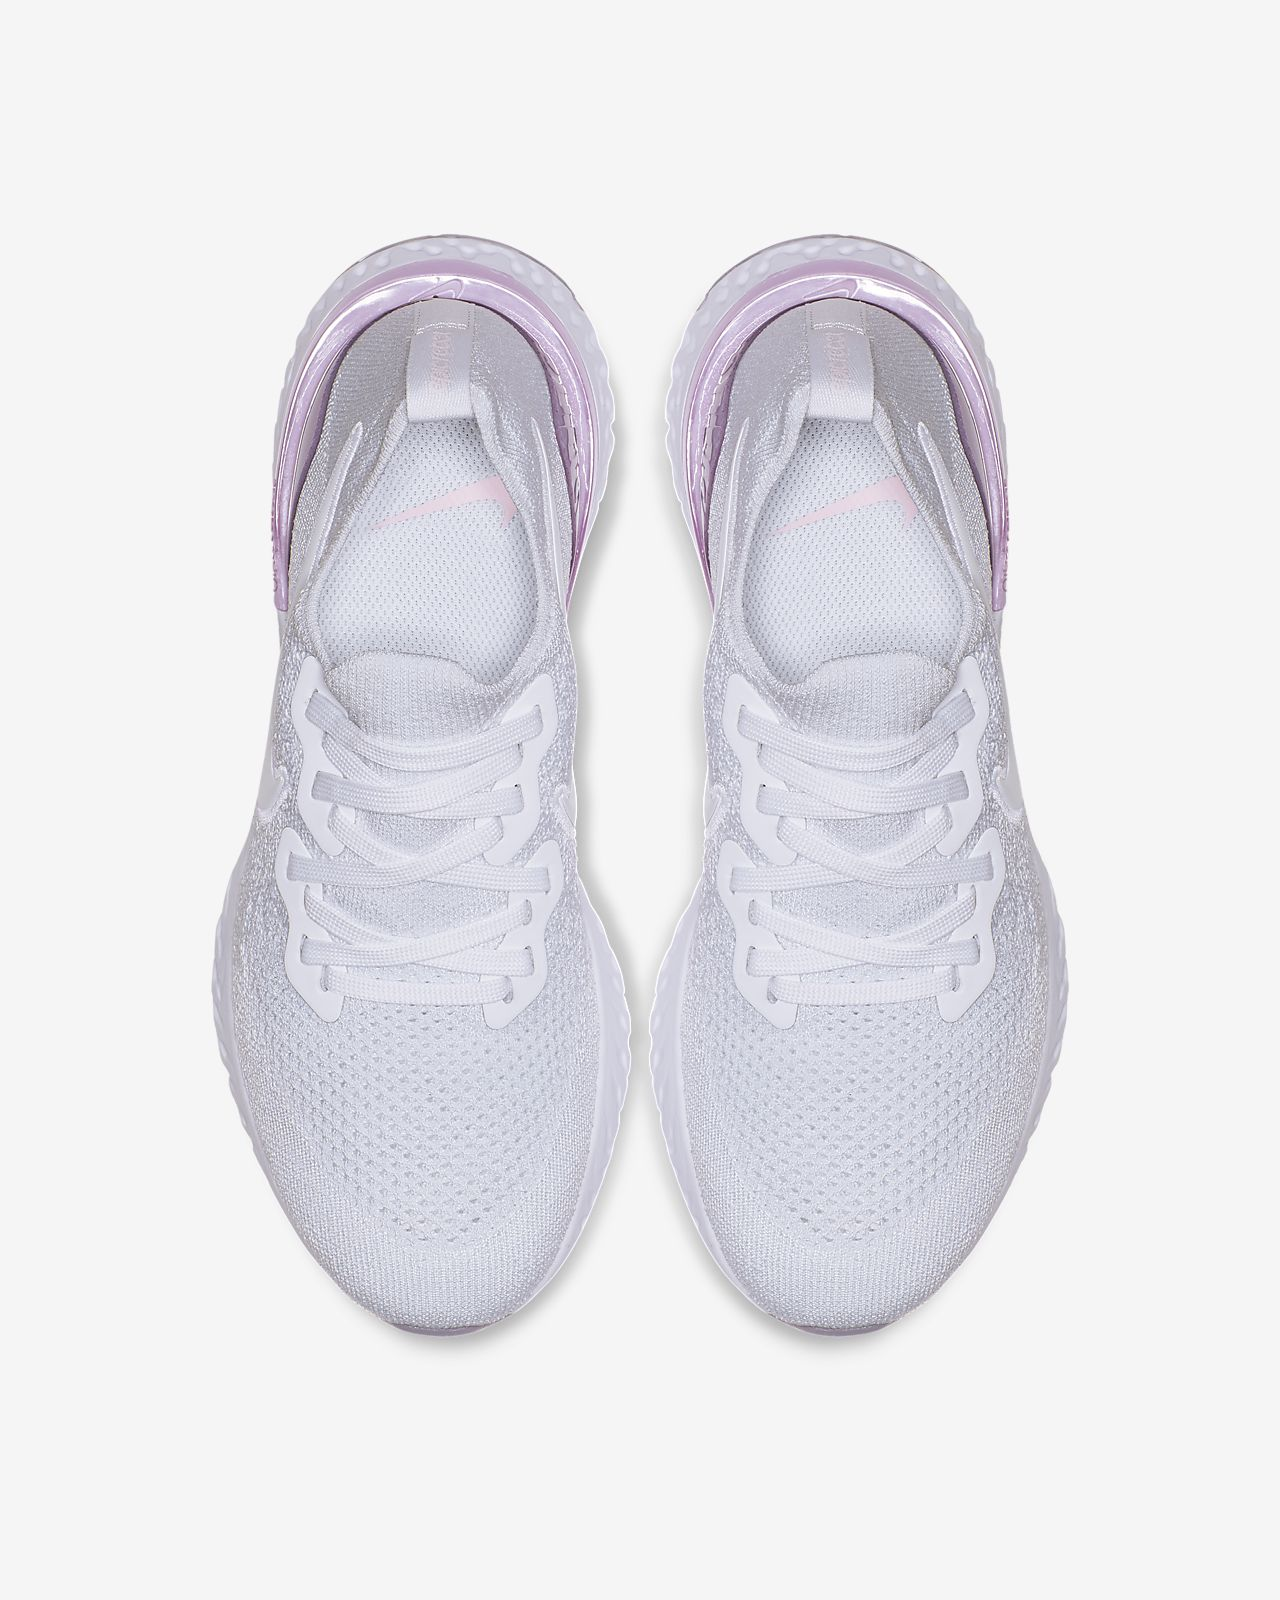 0c51d3797d60 Nike Epic React Flyknit 2 Women s Running Shoe. Nike.com GB